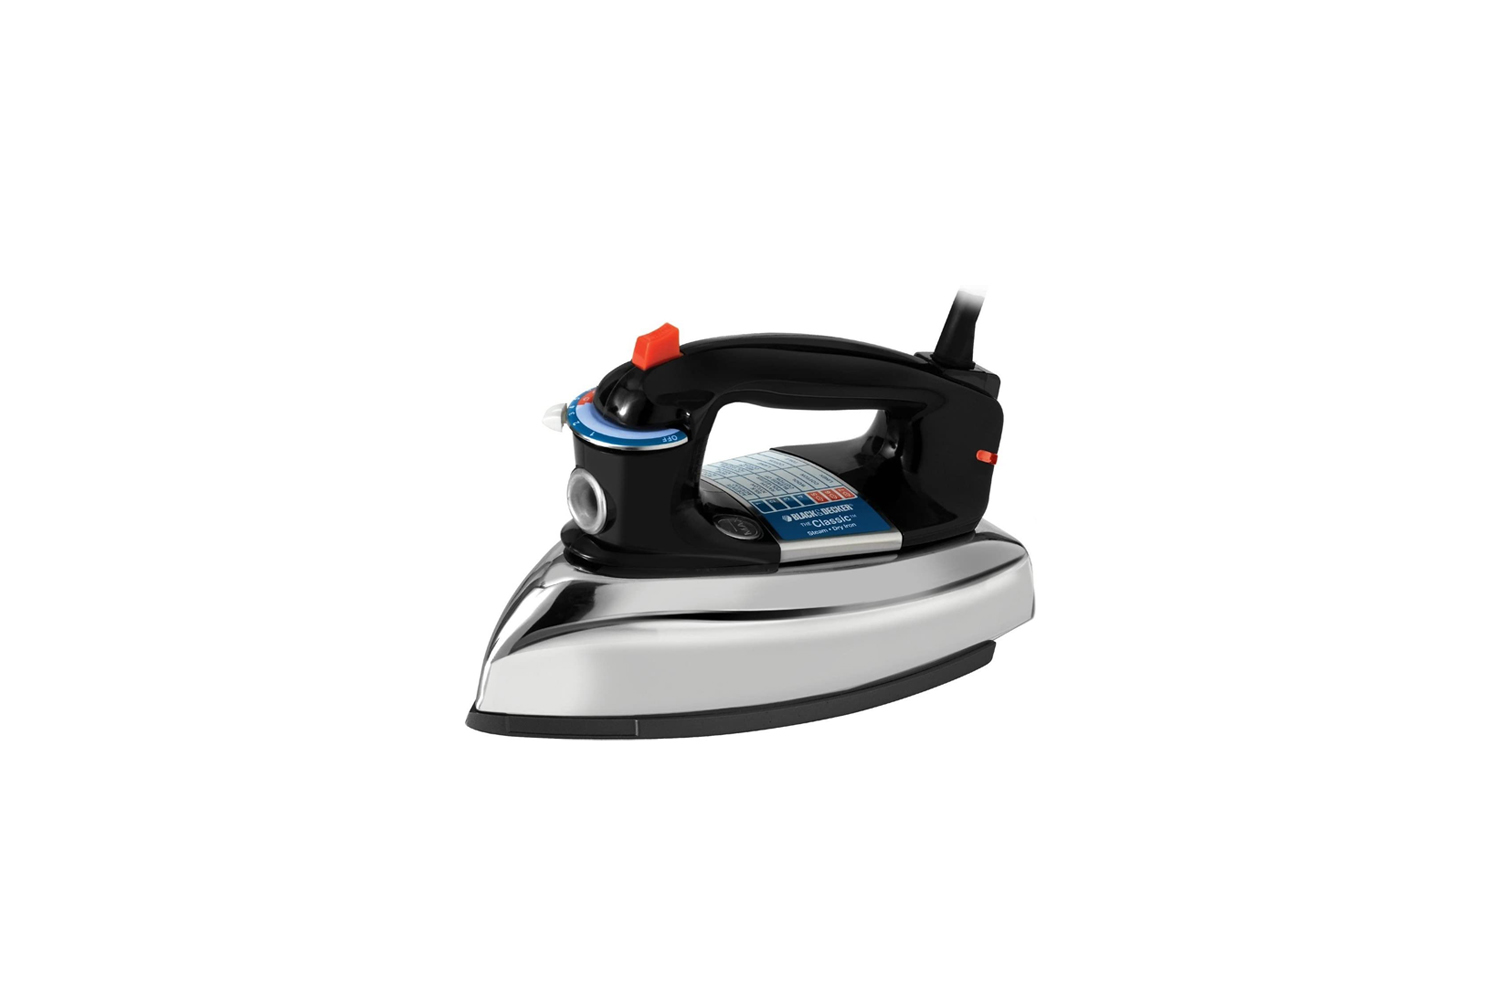 looking for a basic iron without bells and whistles? the black + decker classic 17